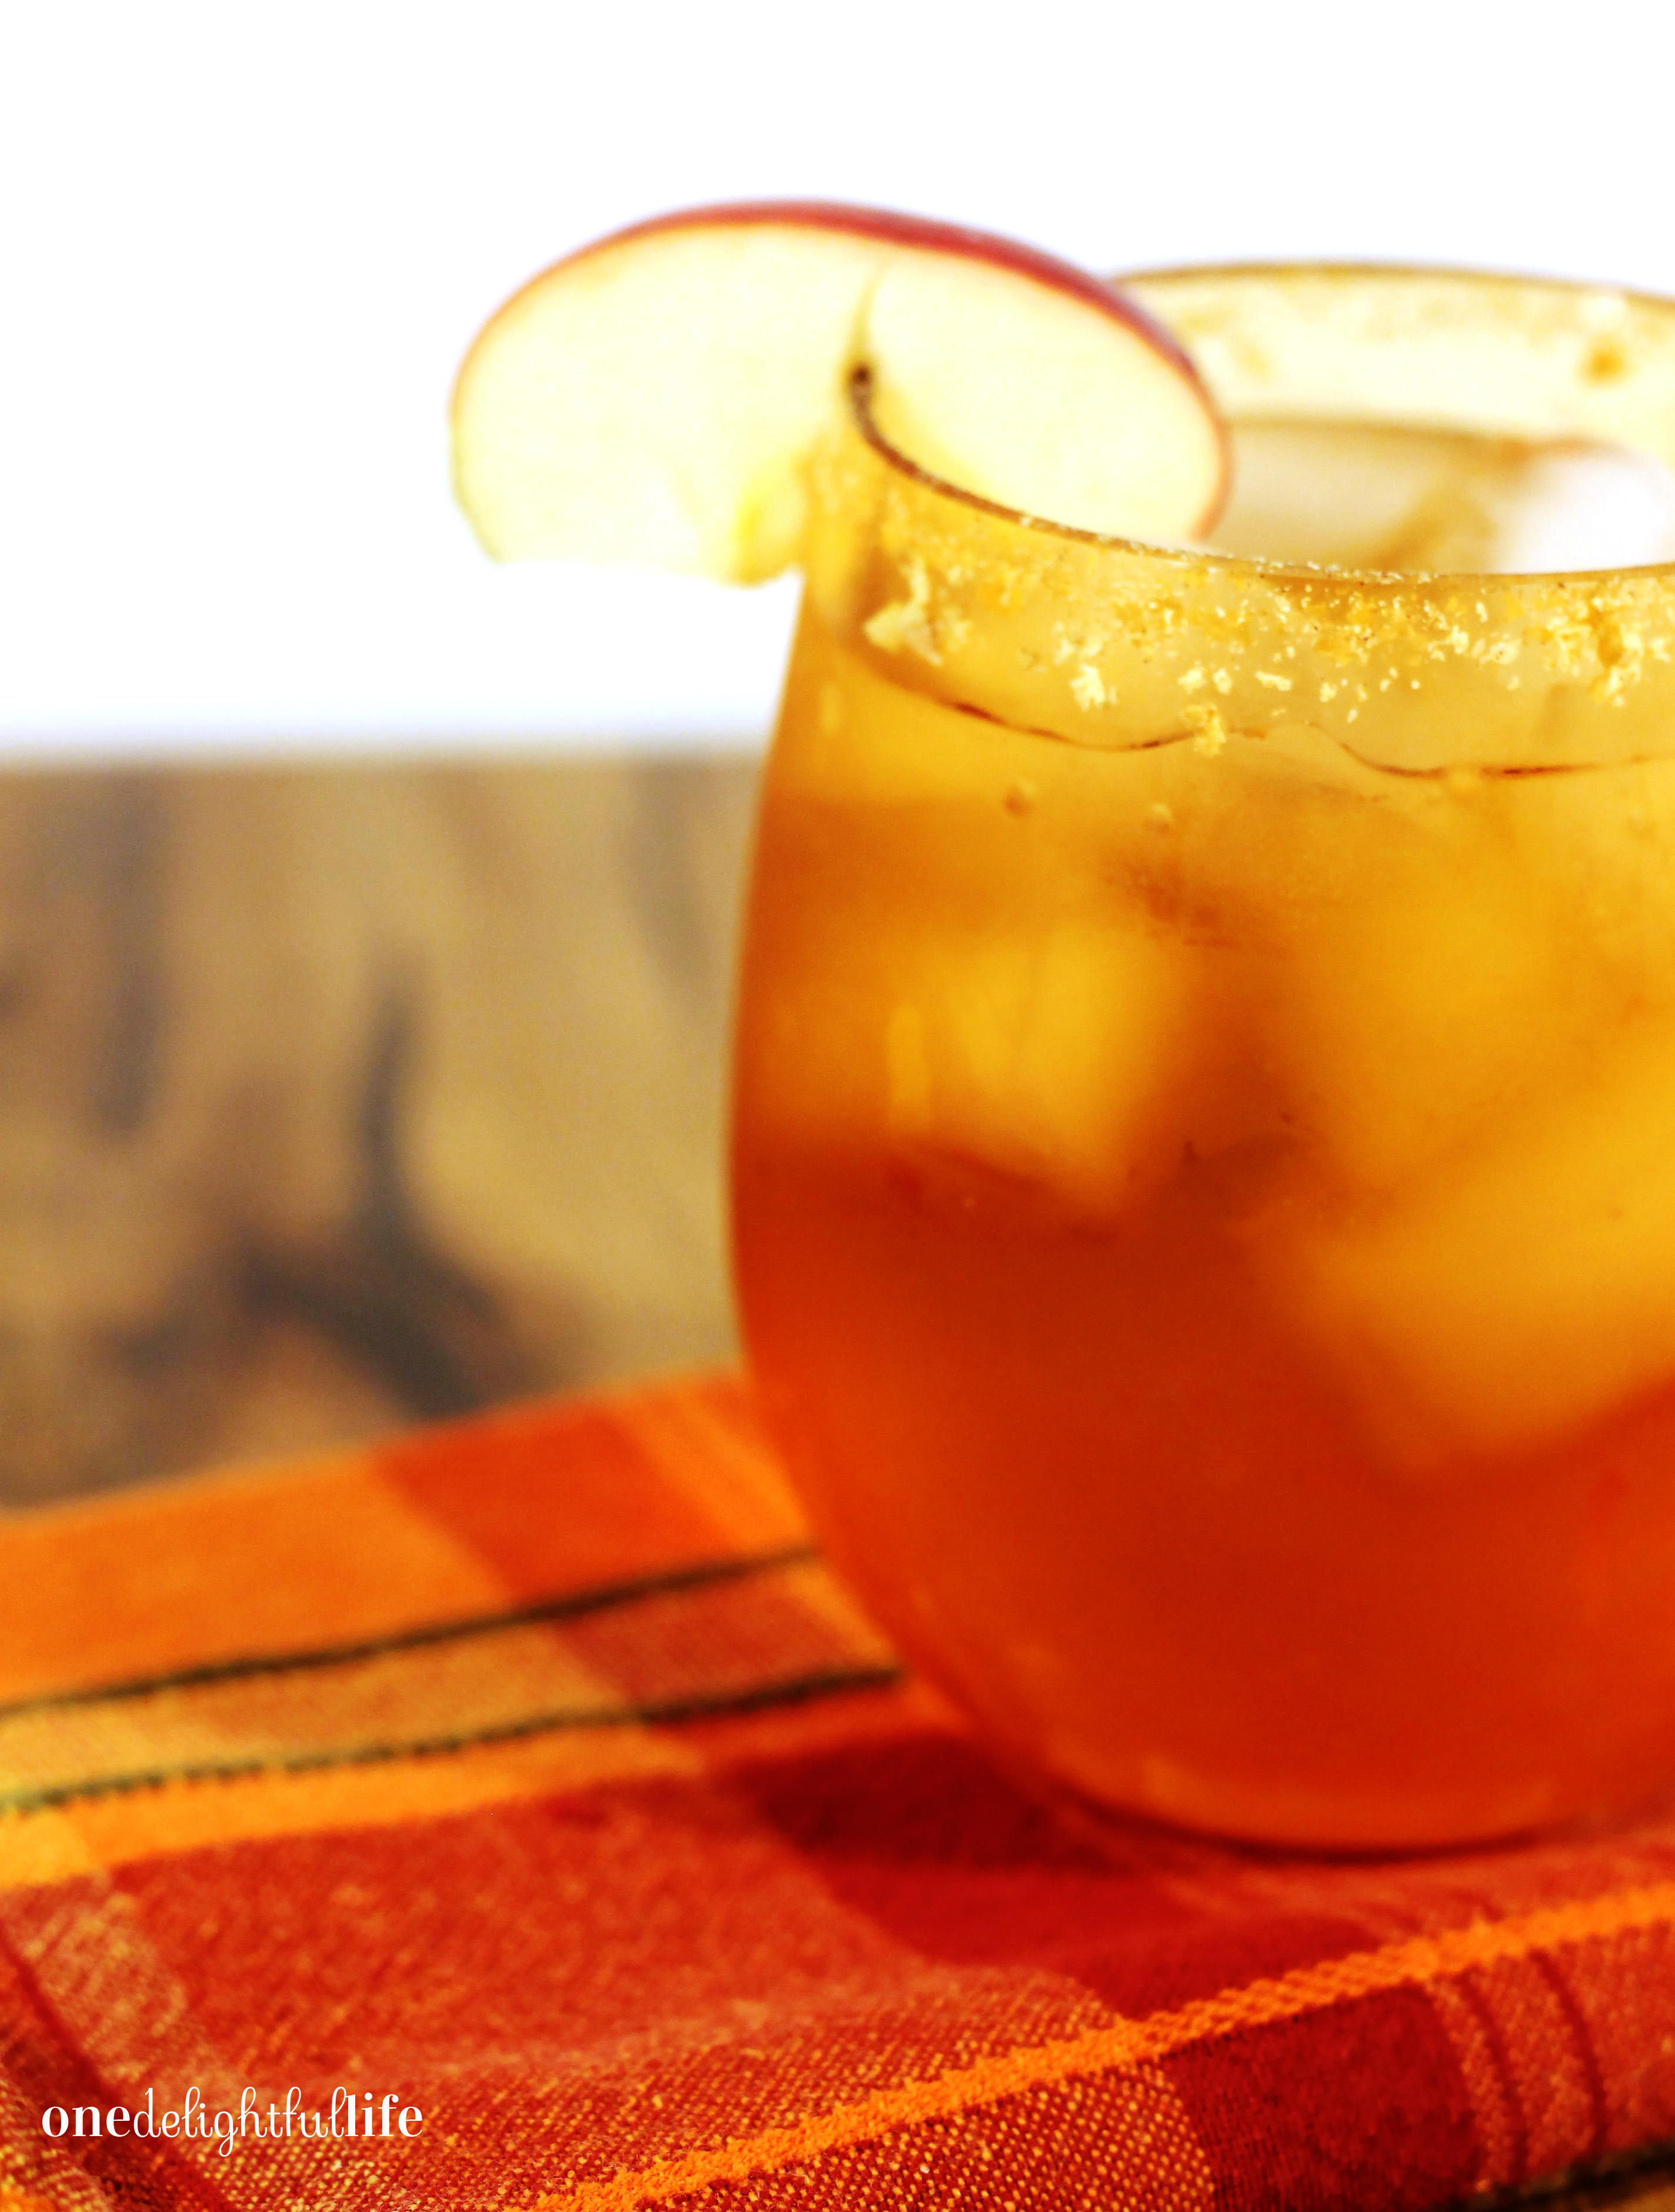 pumpkin-spice-and-everything-nice-apple-cocktail